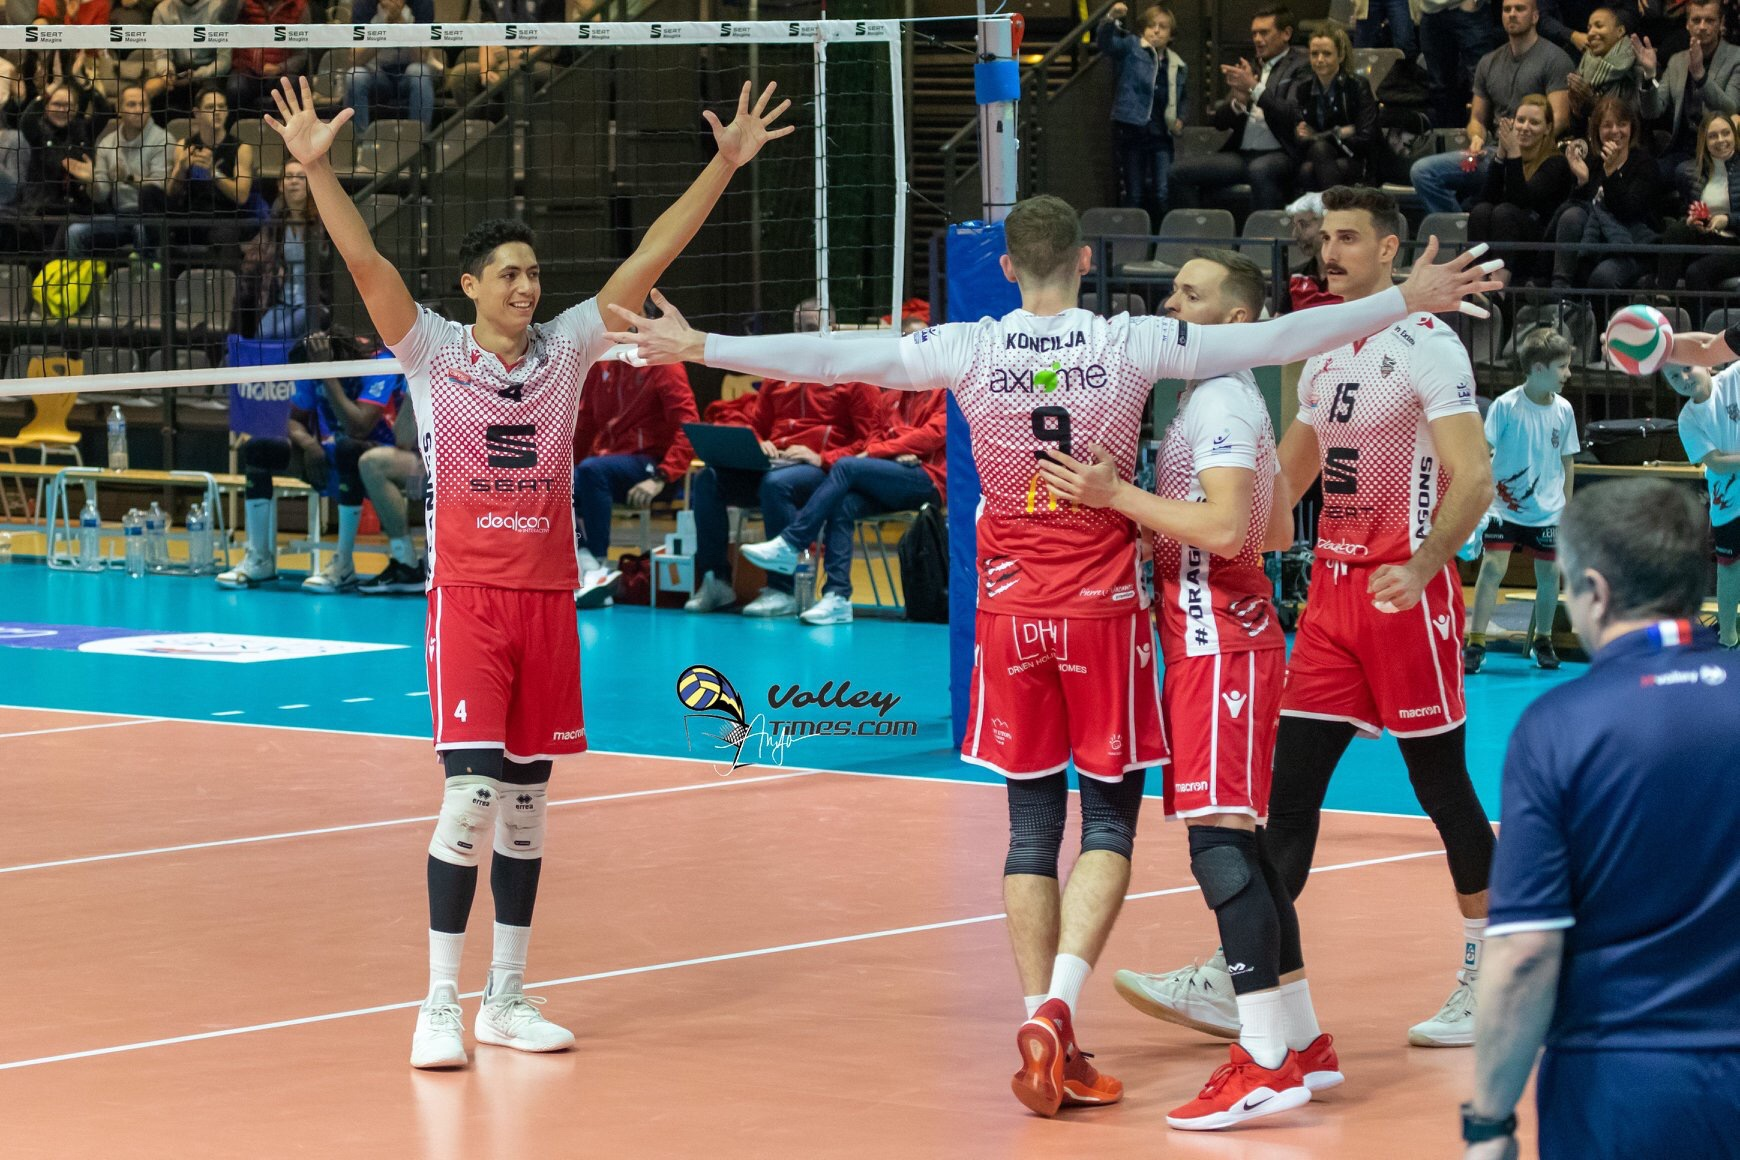 France: Narbonne stops Tours, Chaumont wins the big match, Montpellier, Poitiers, Cannes & Paris ok